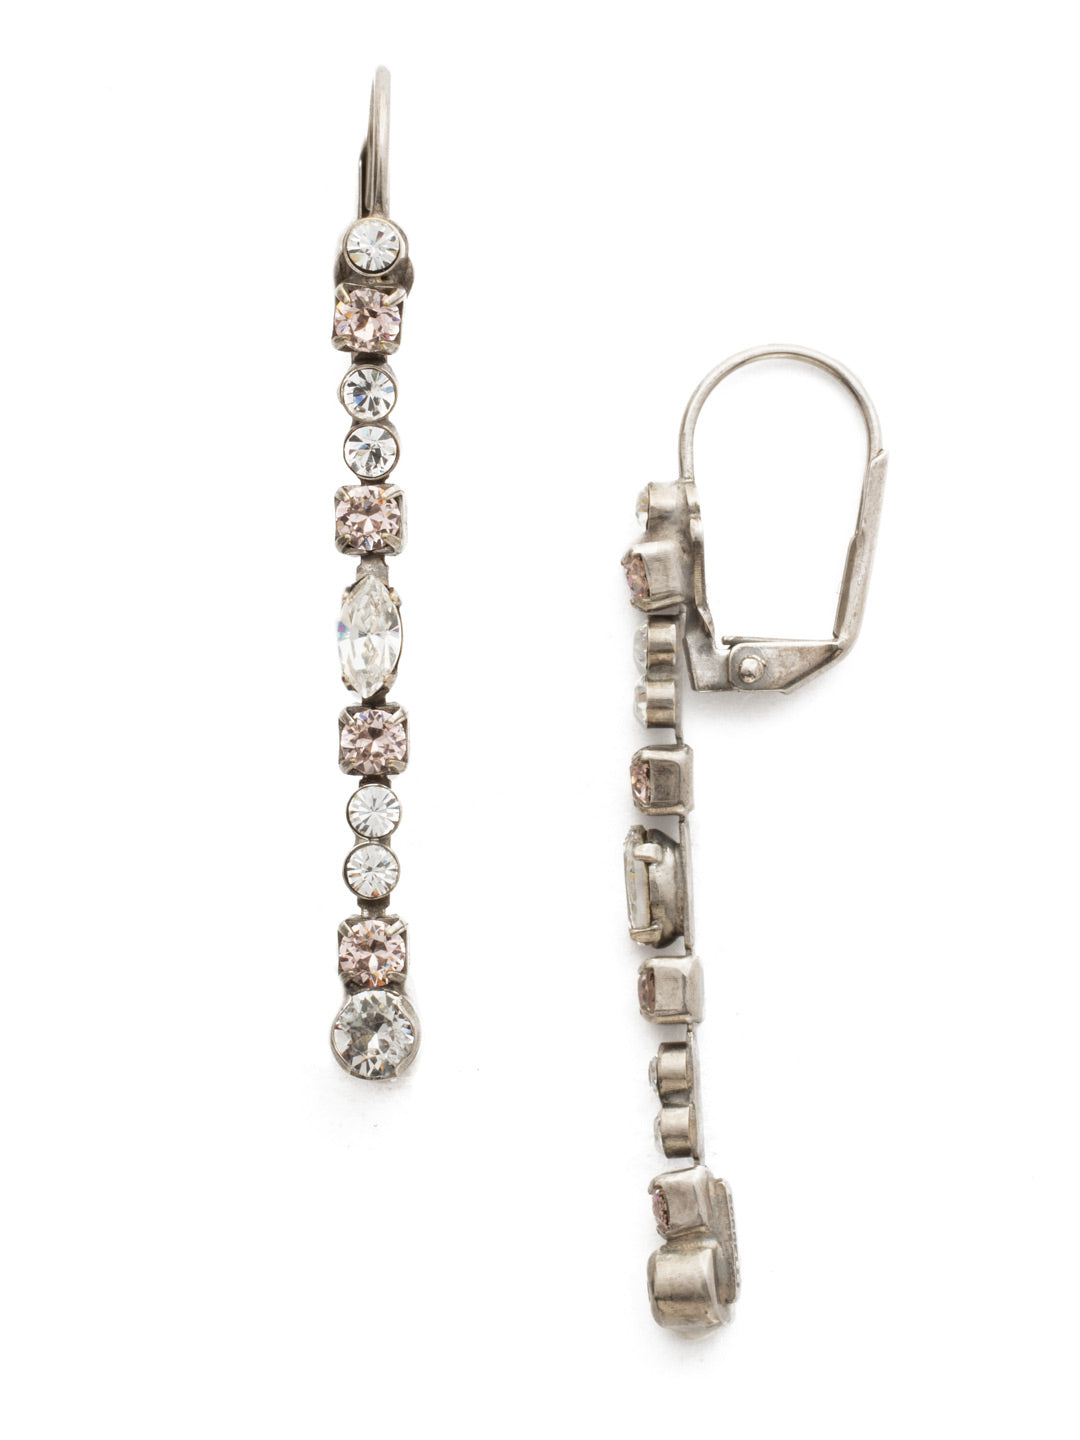 Crystal Line Style Earrings - EBU22ASSNB